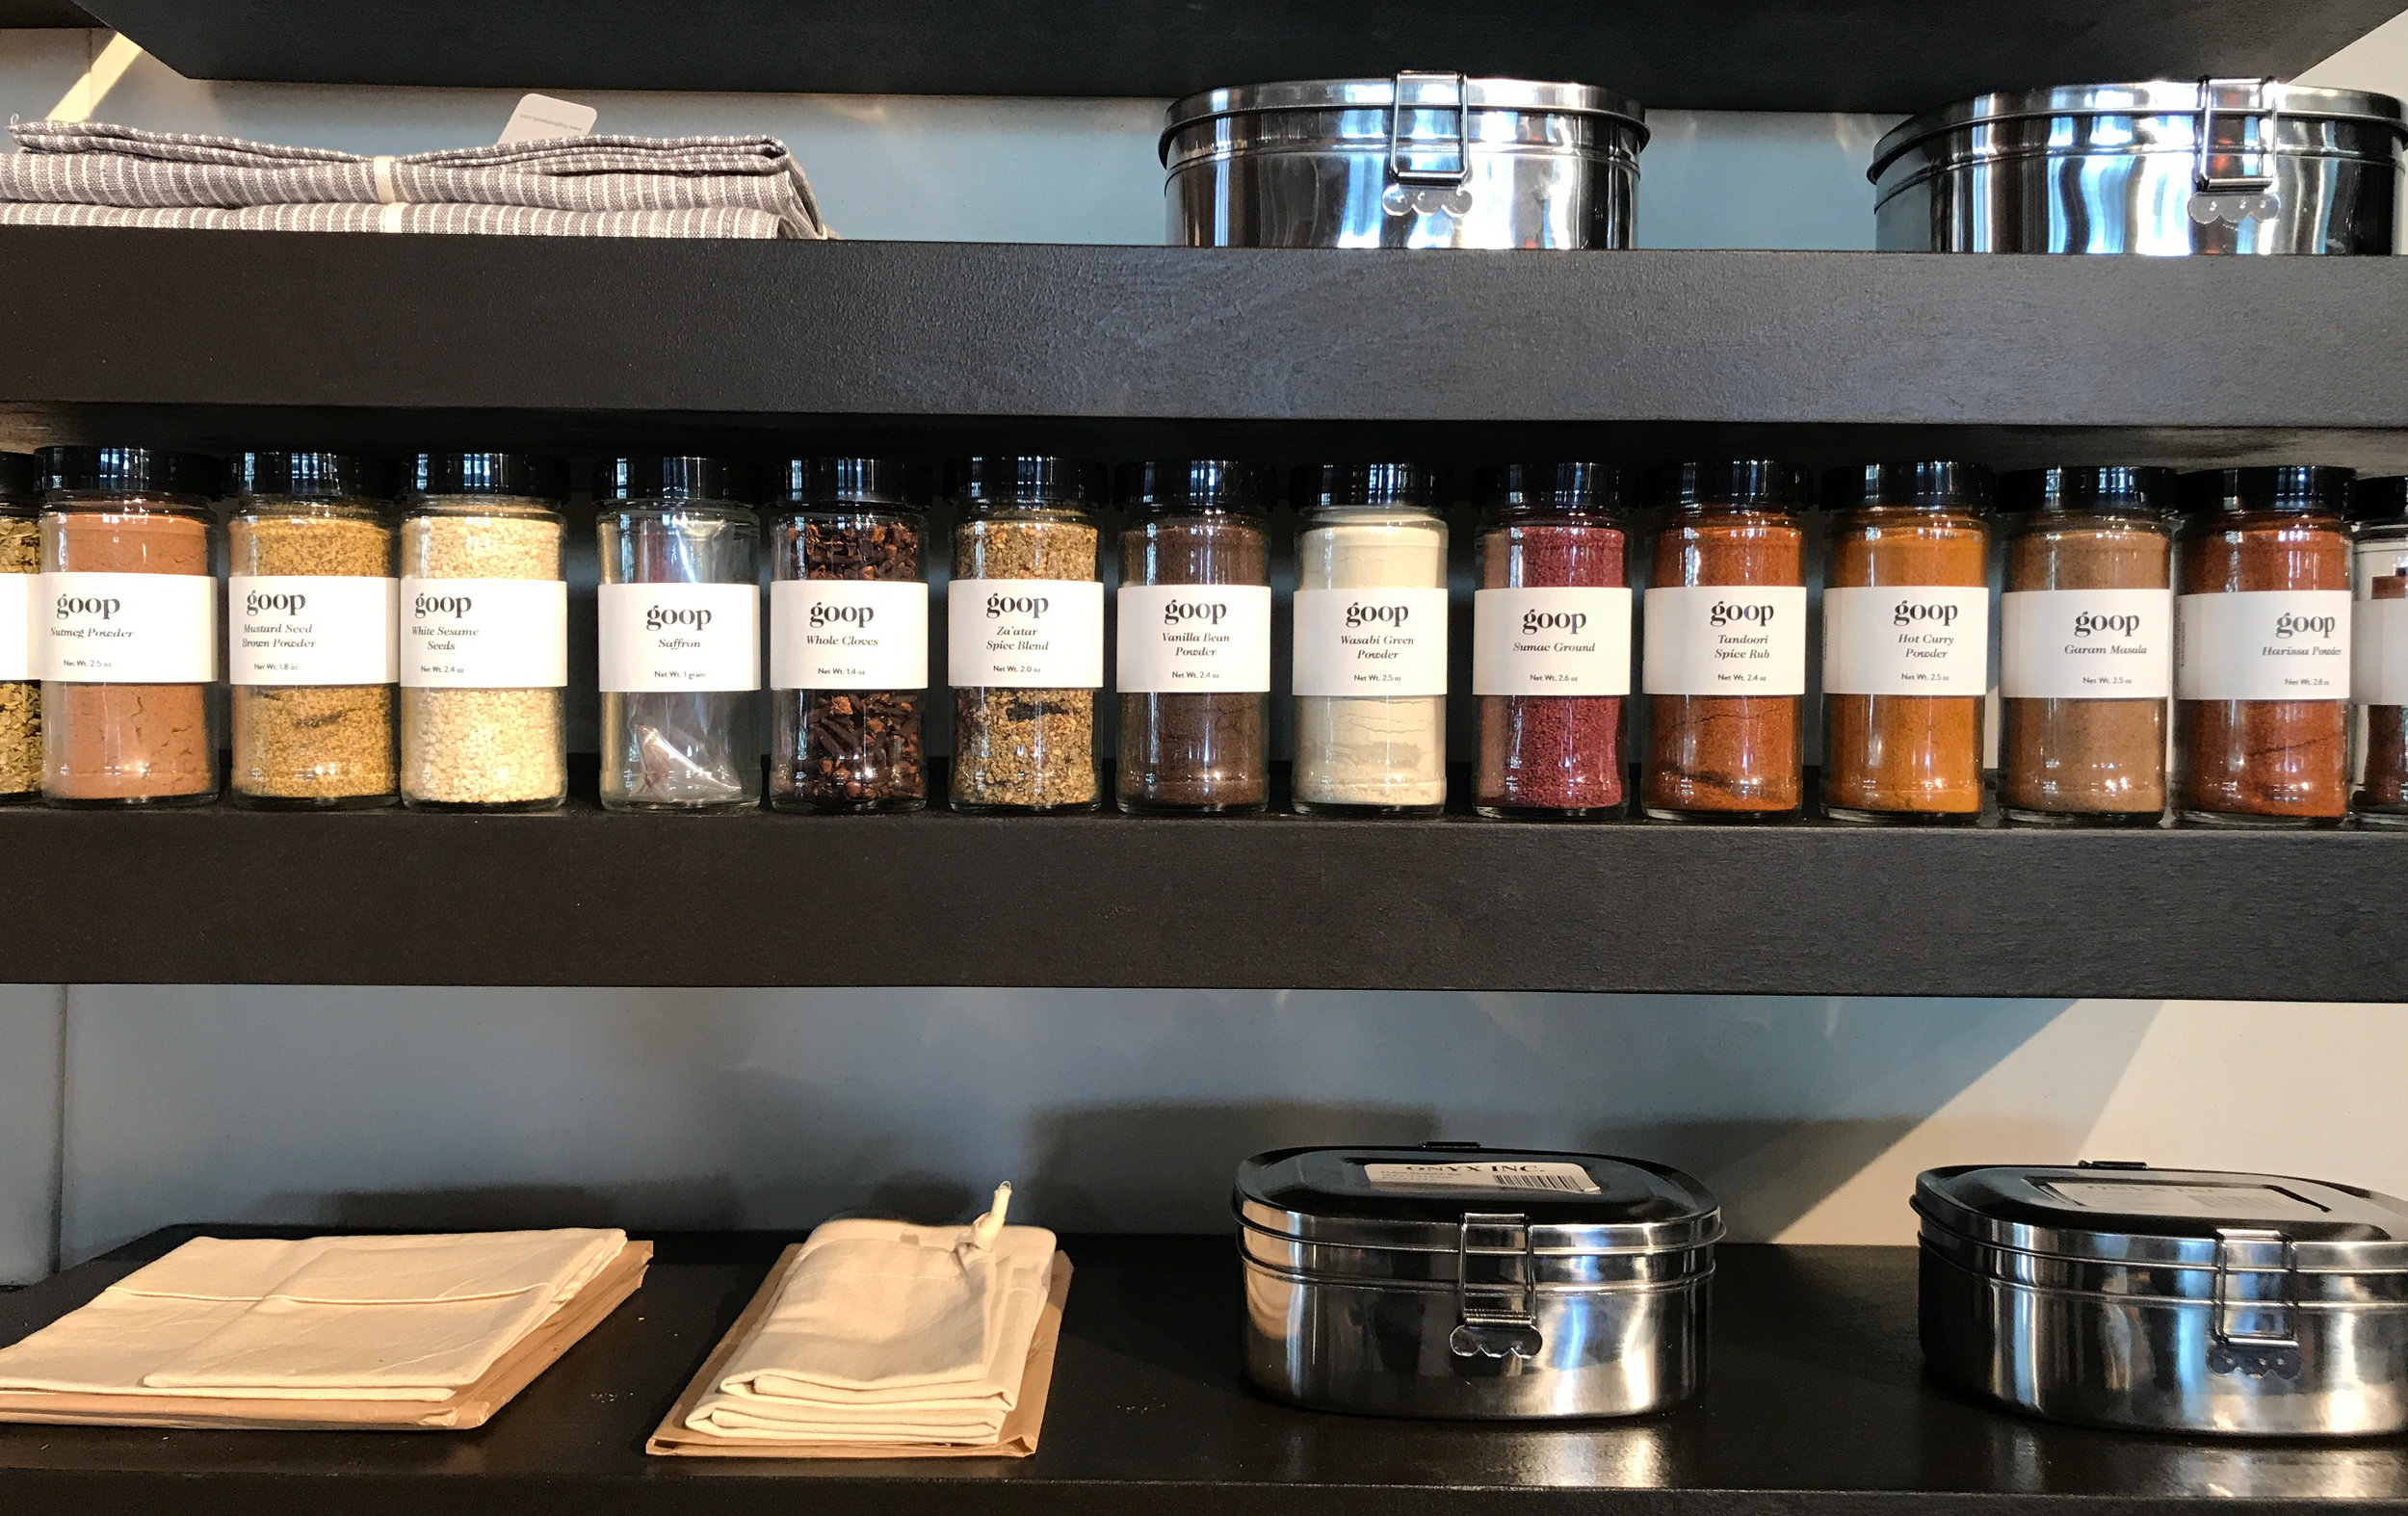 New Goop spices at the Detox Pantry.